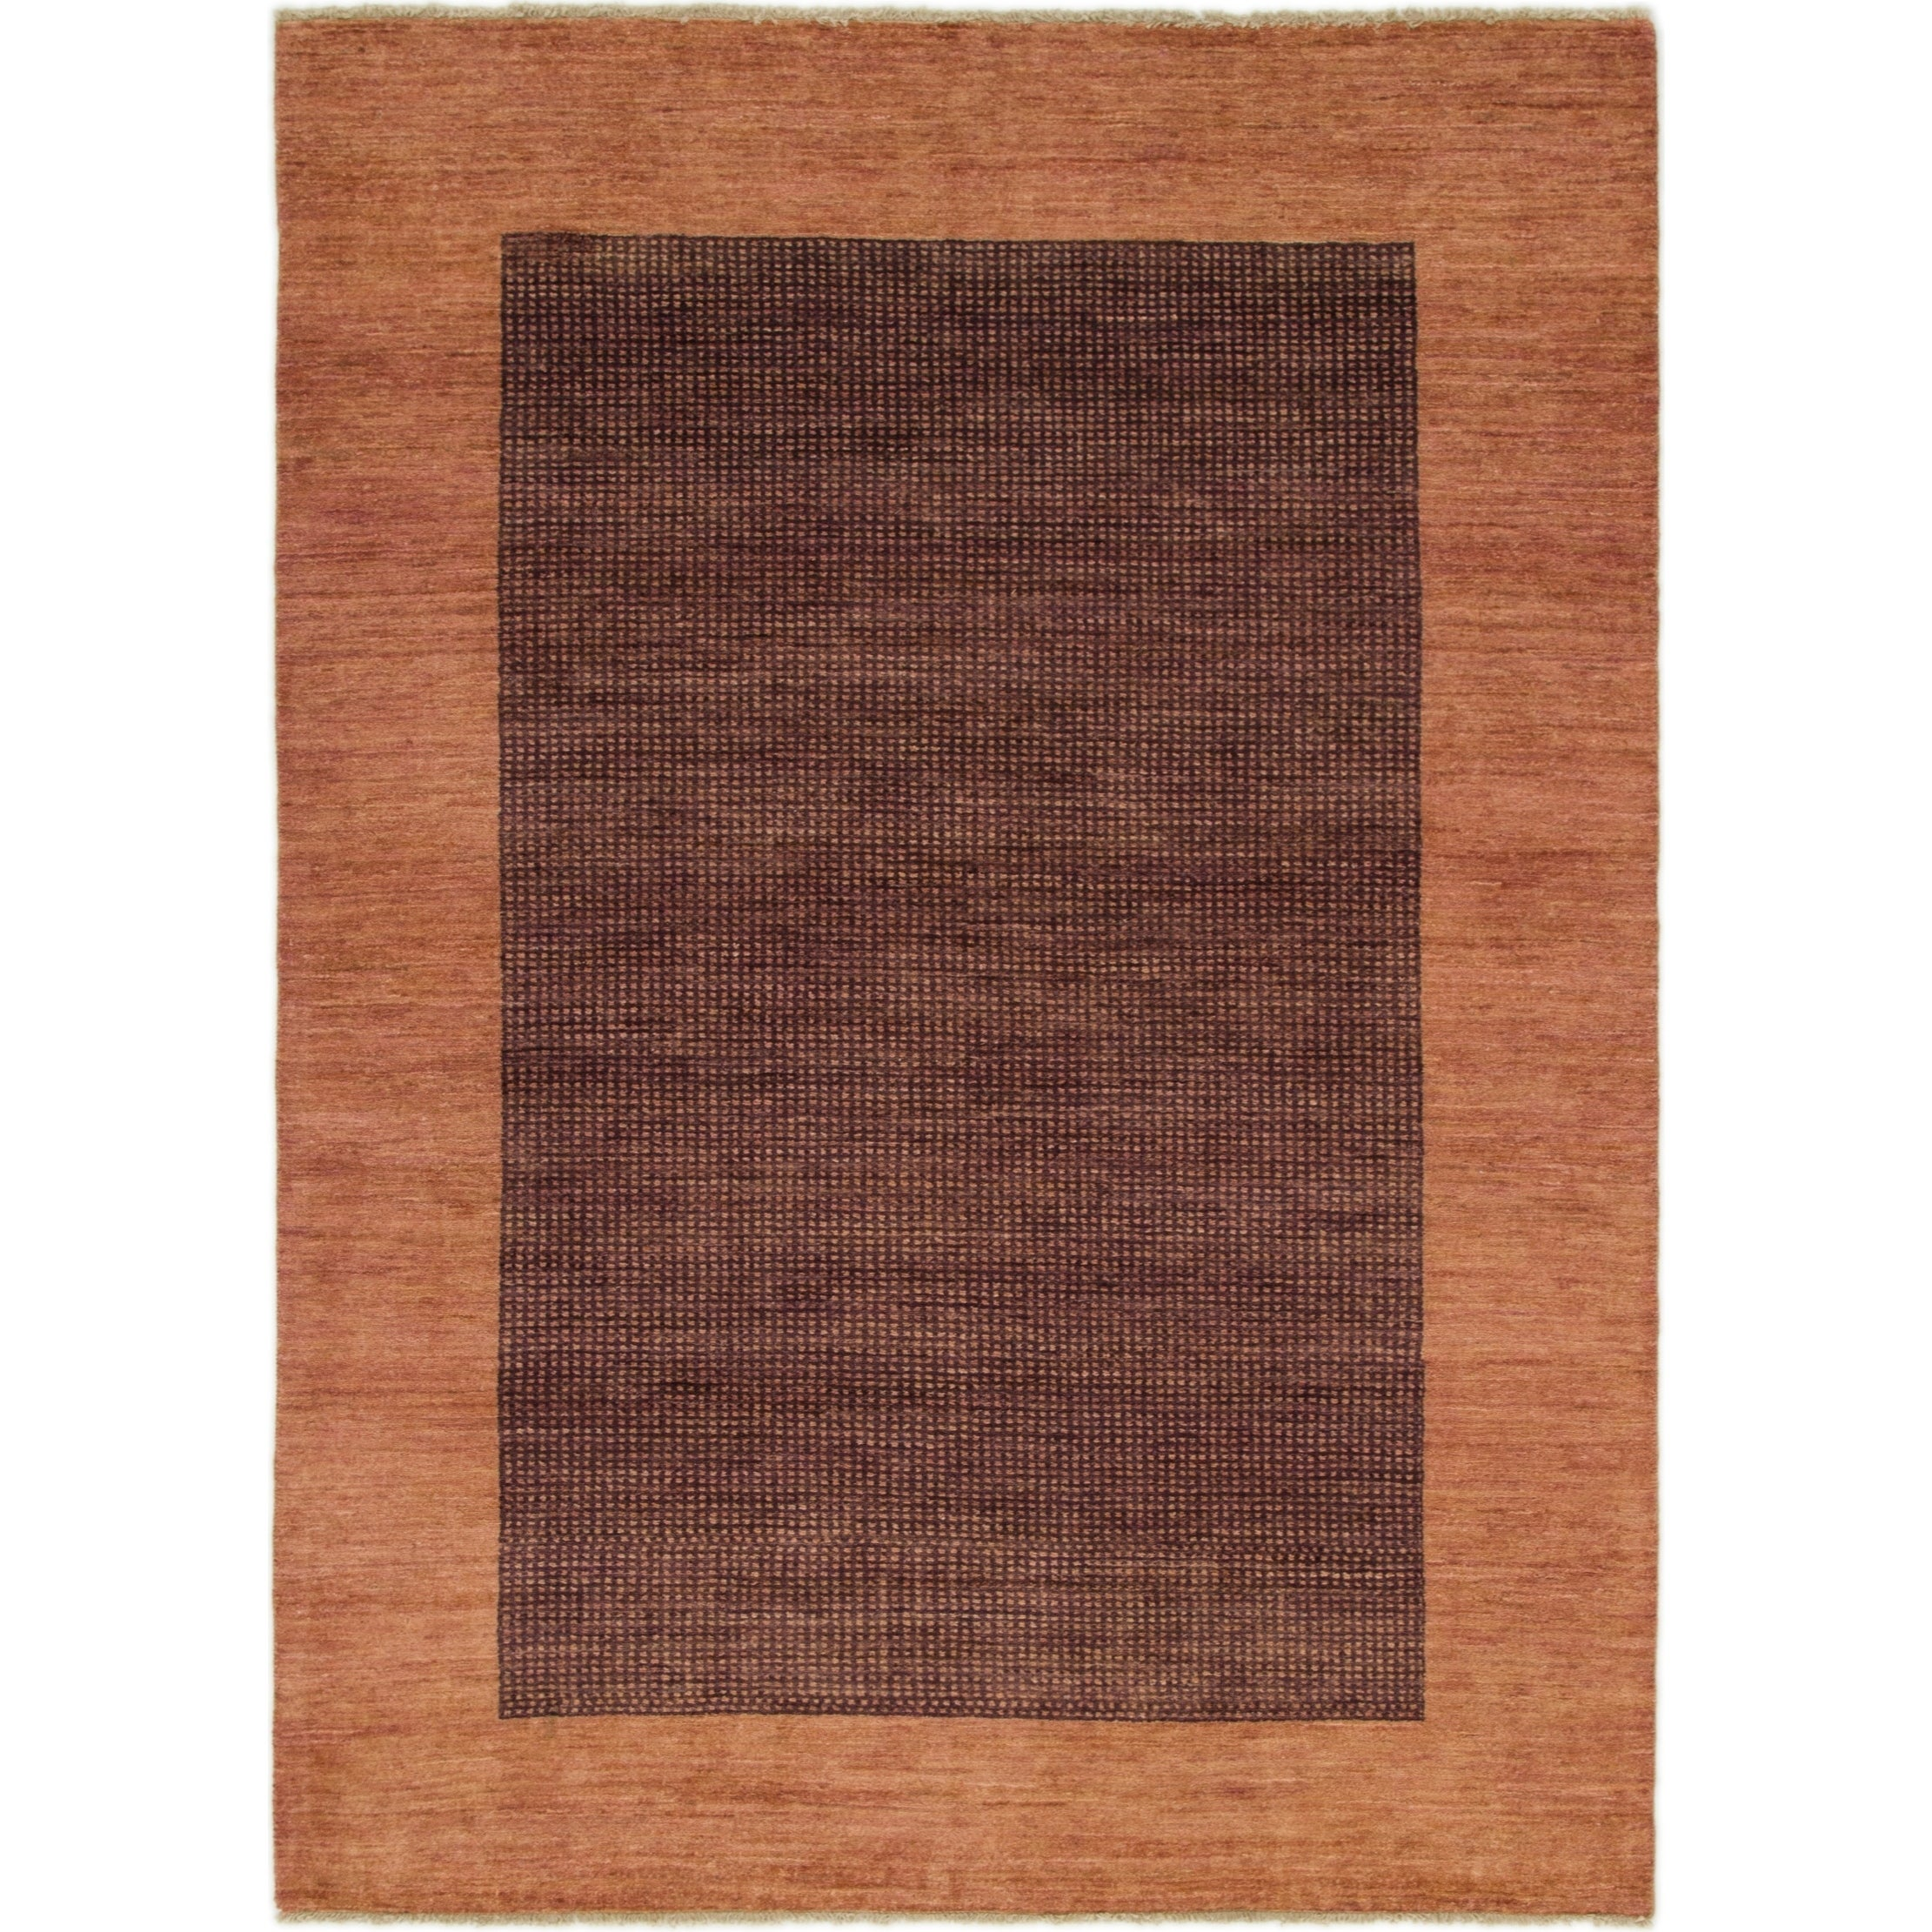 Hand Knotted Kashkuli Gabbeh Wool Area Rug - 5 8 x 7 9 (puce - 5 8 x 7 9)